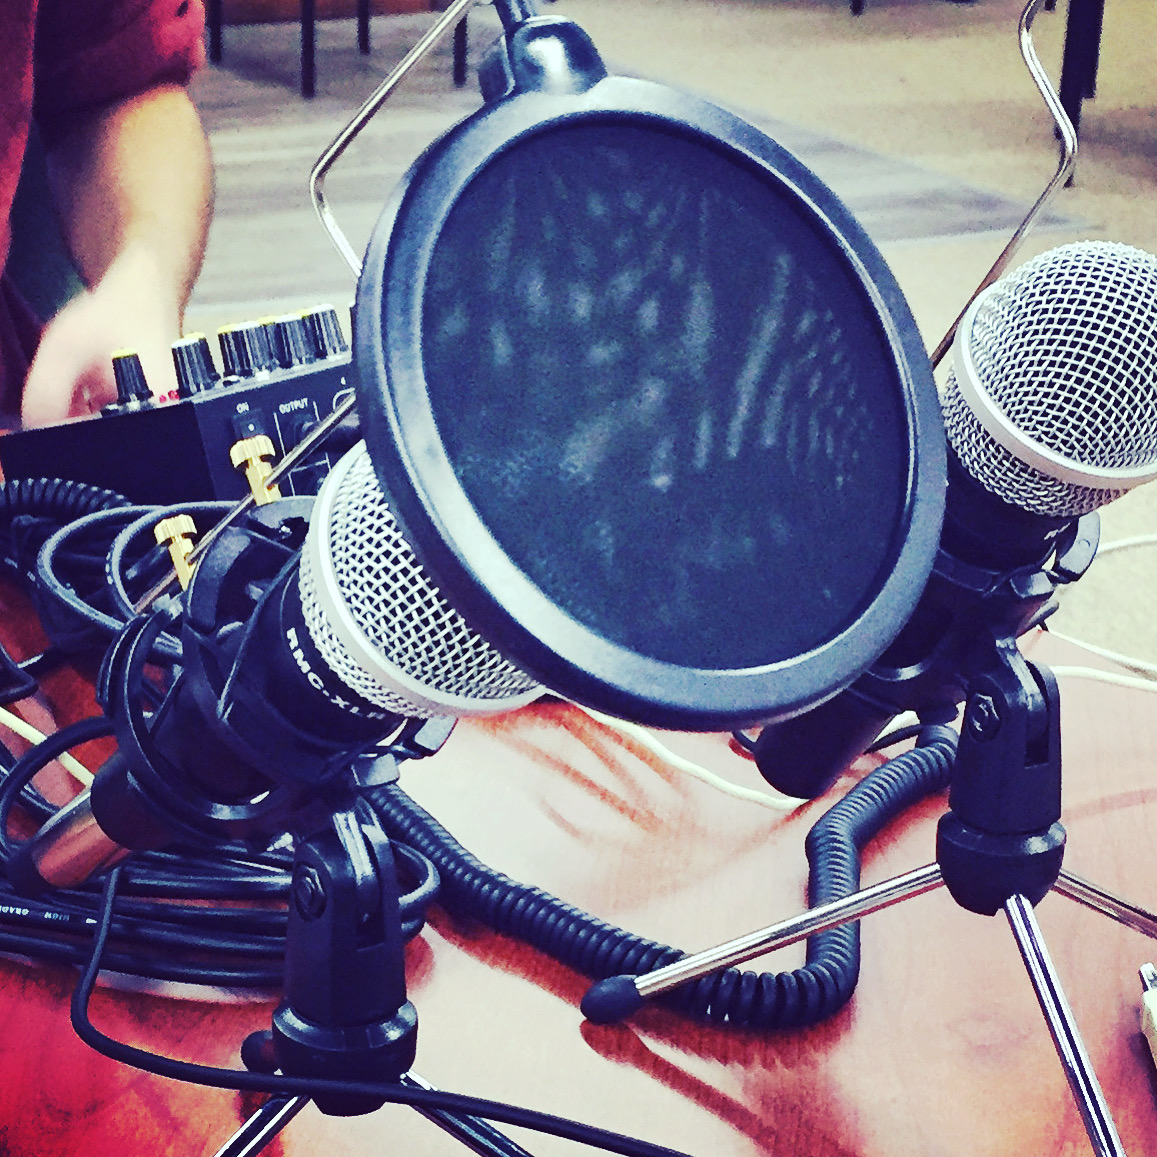 This is a picture of some of our podcasting equipment including microphones